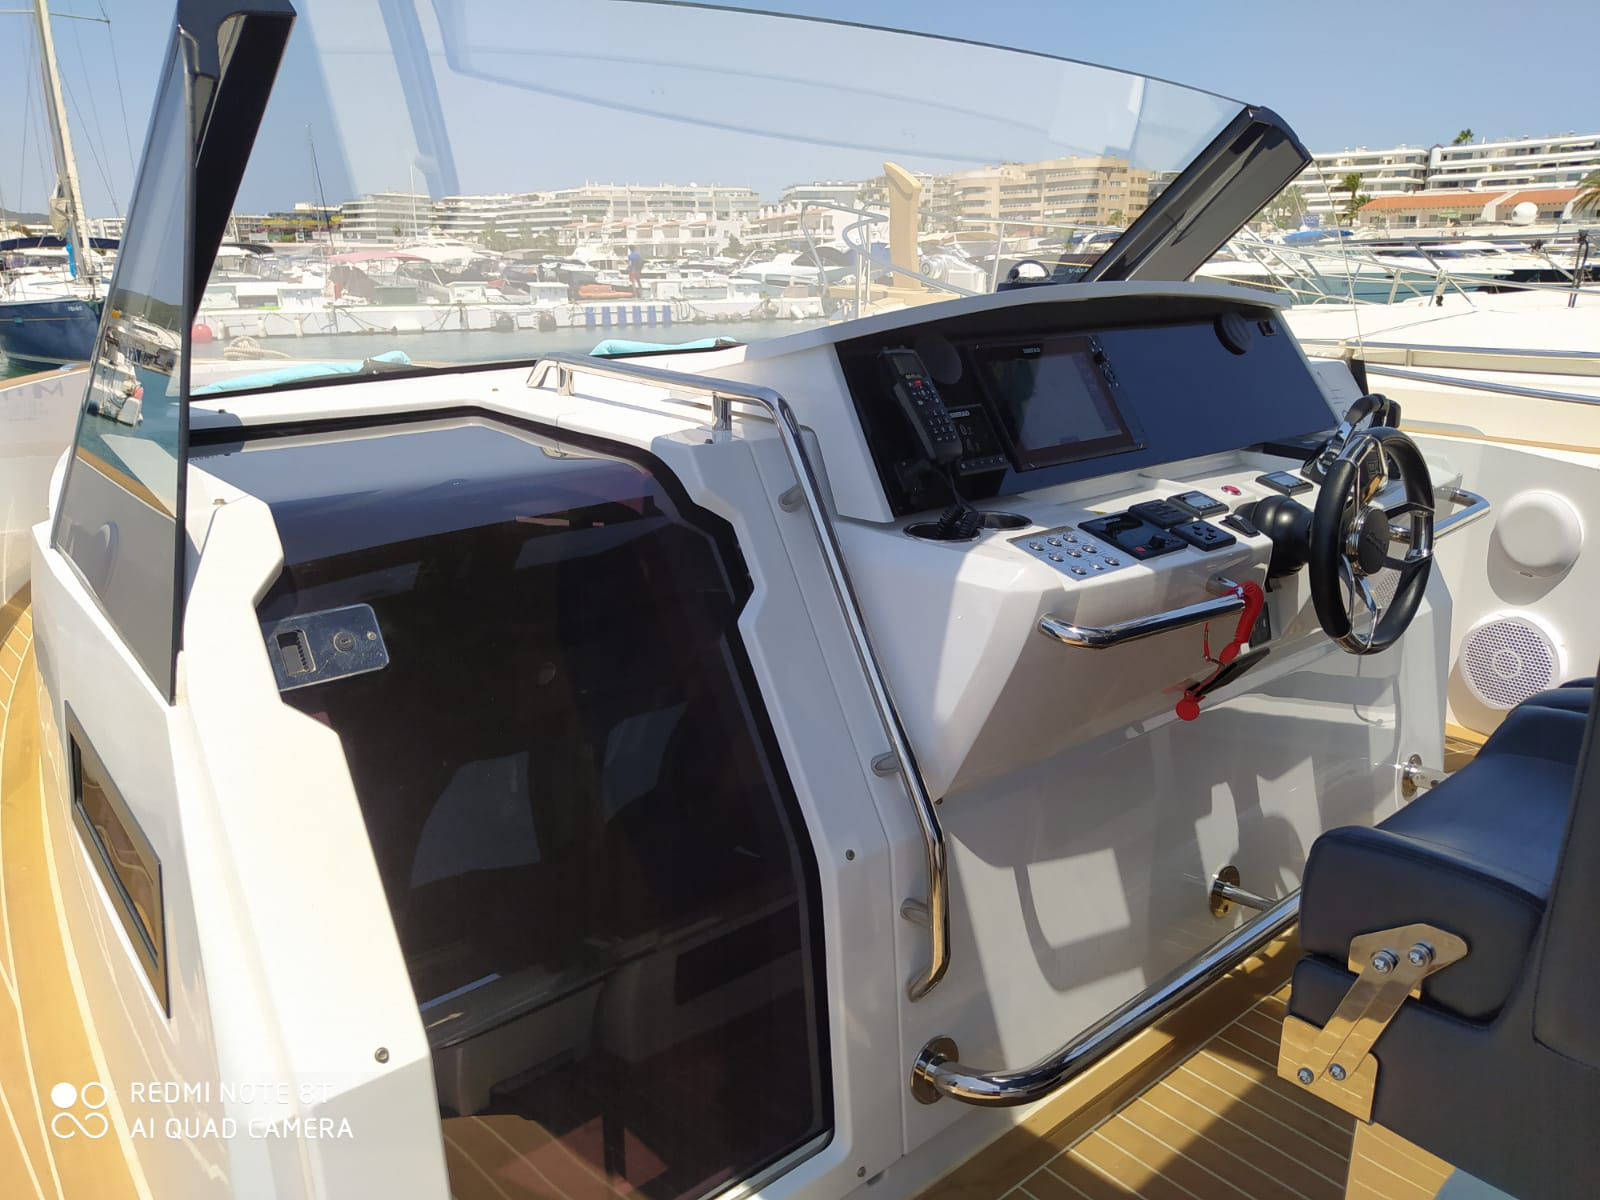 Fjord 44 Open (MEDCAT68 Available for daily charter only - From 10:00 to 20:00 - 0 night)  - 30